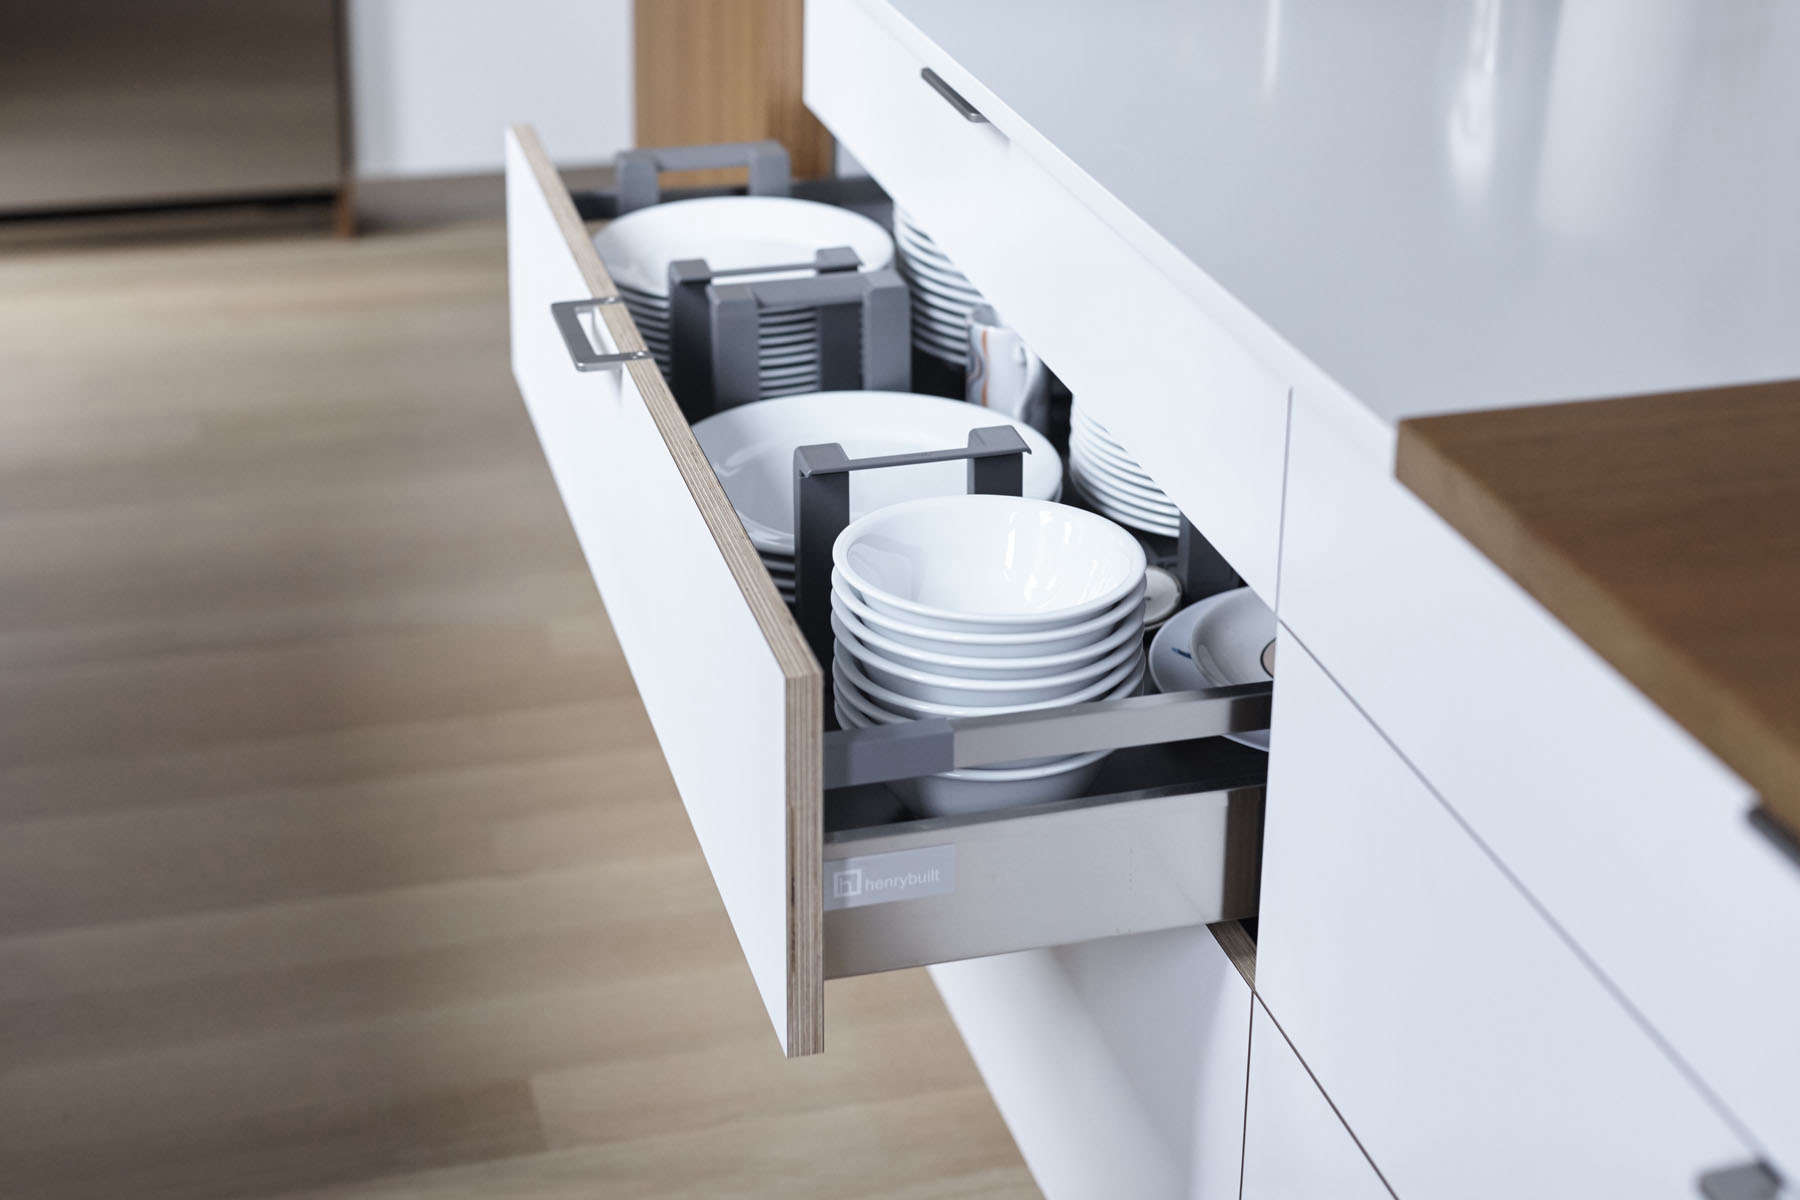 Henrybuilt kitchen drawer fitted with dividers for plates and bowls